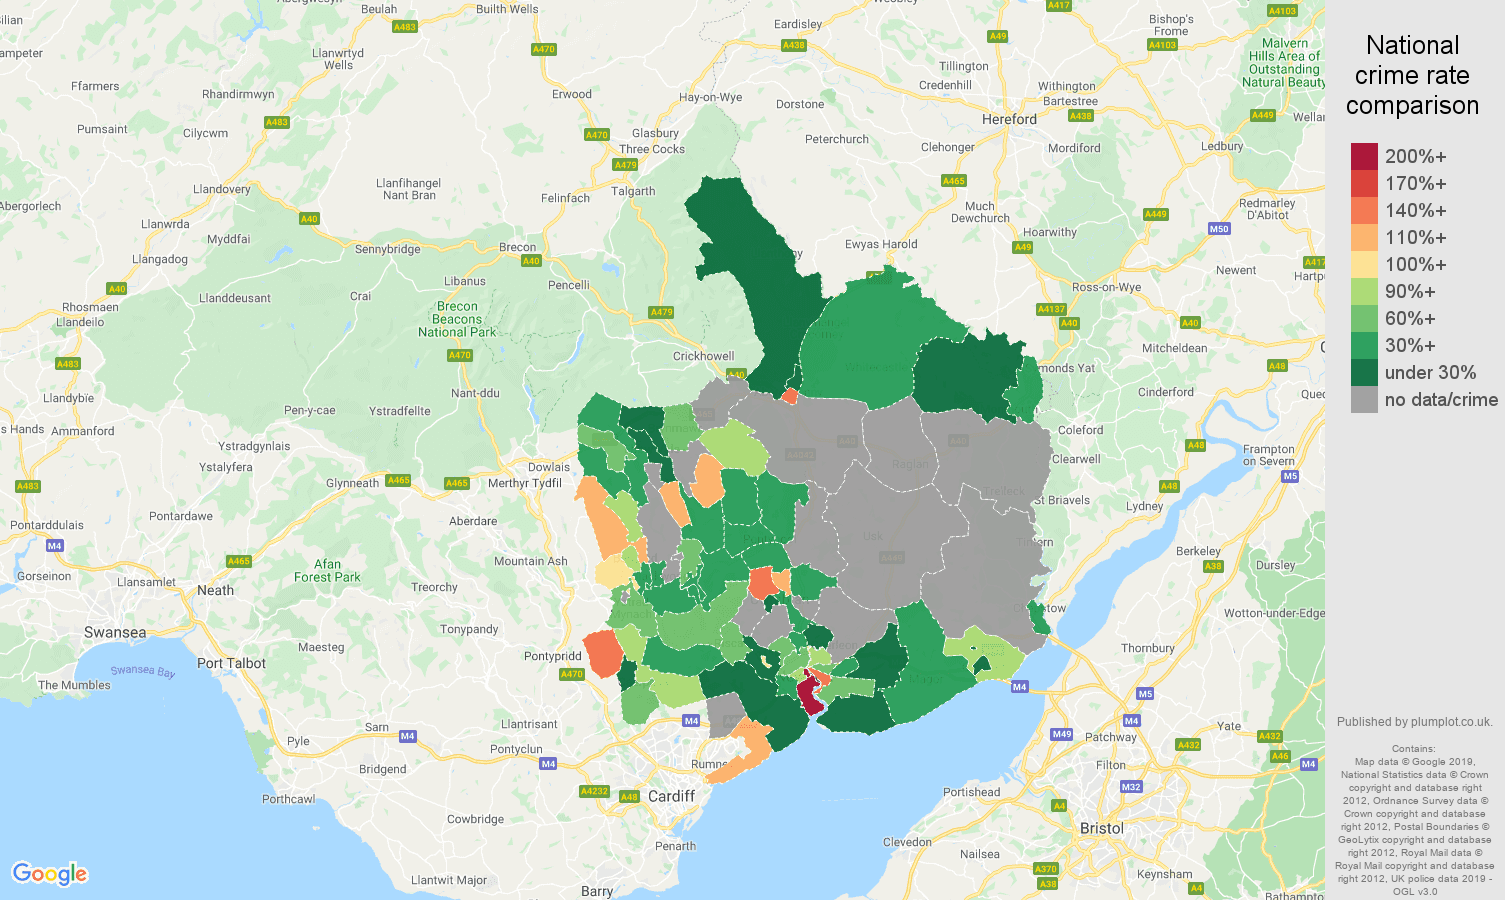 Gwent possession of weapons crime rate comparison map